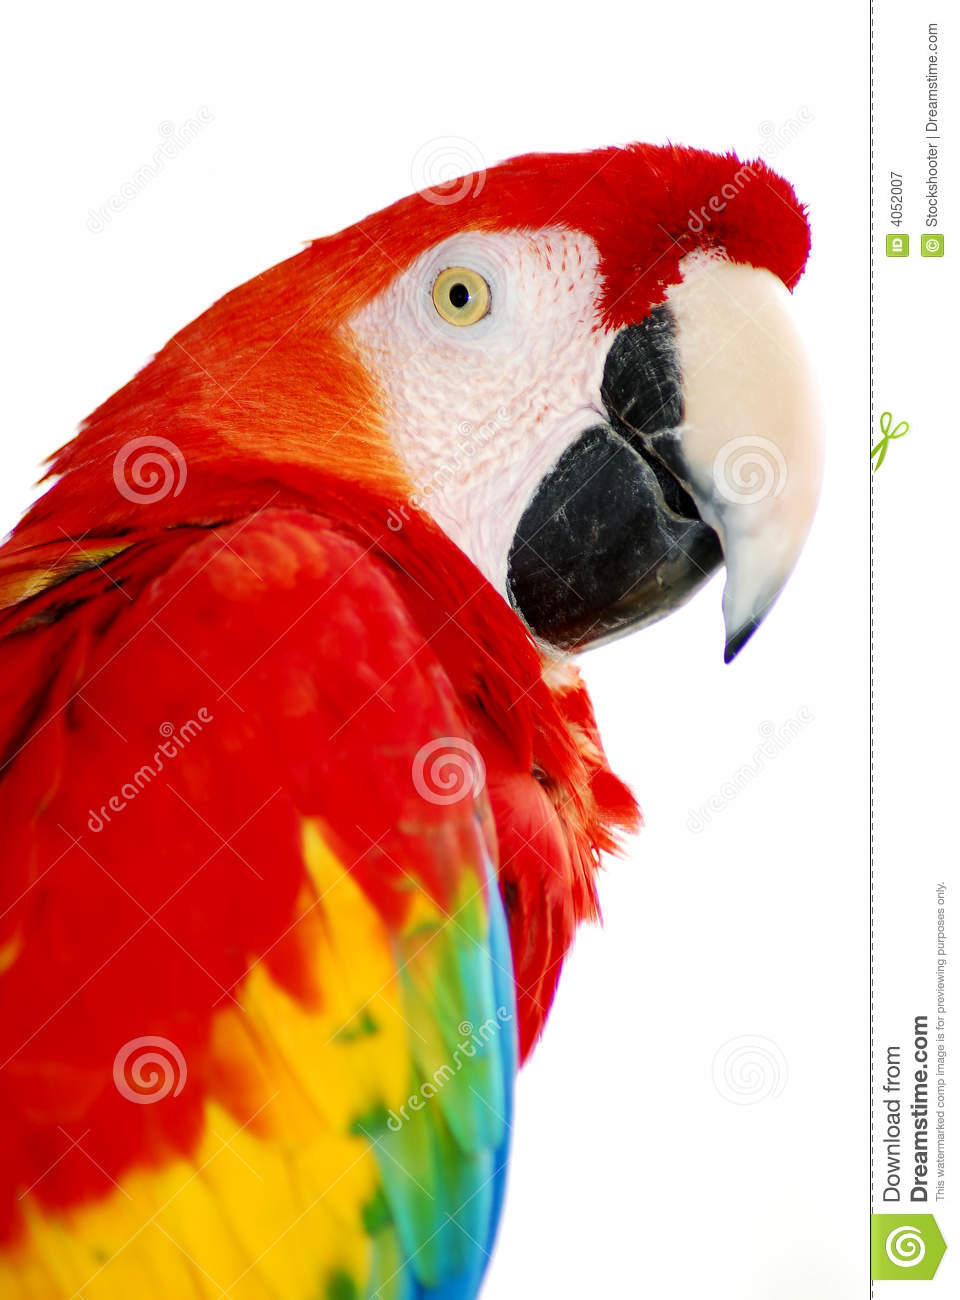 Roter Macaw Vogel